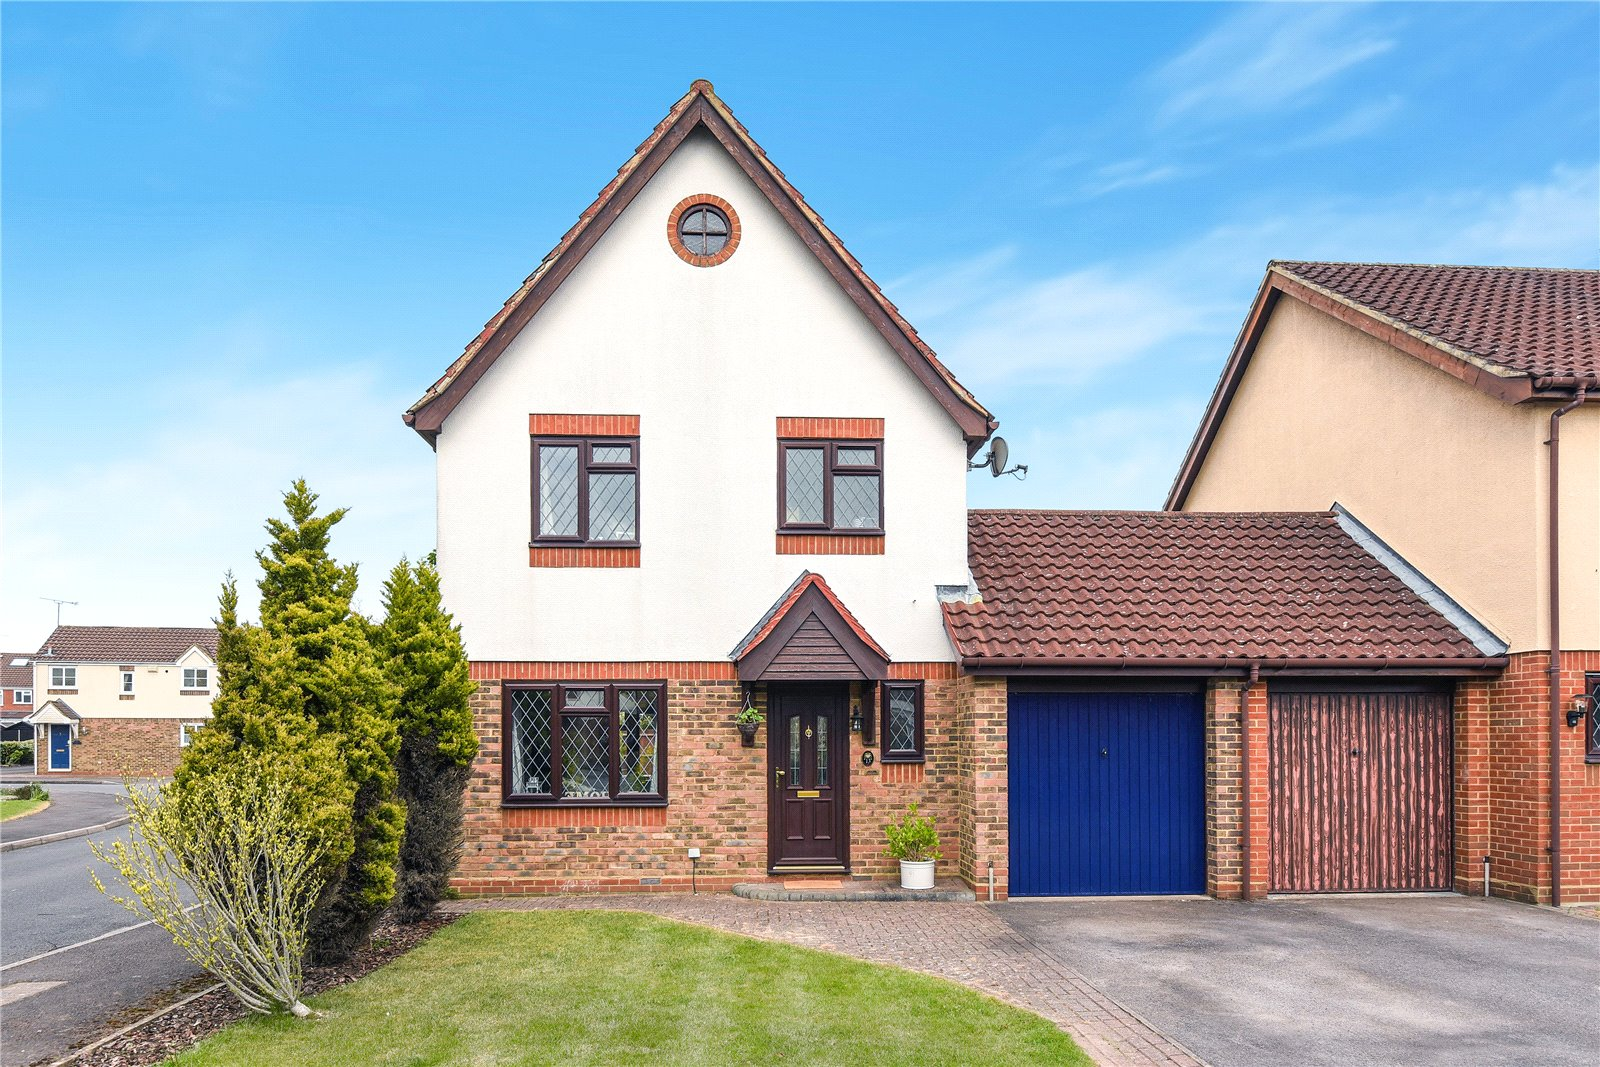 3 Bedrooms Link Detached House for sale in Waterhouse Mead, College Town, Sandhurst, Berkshire, GU47